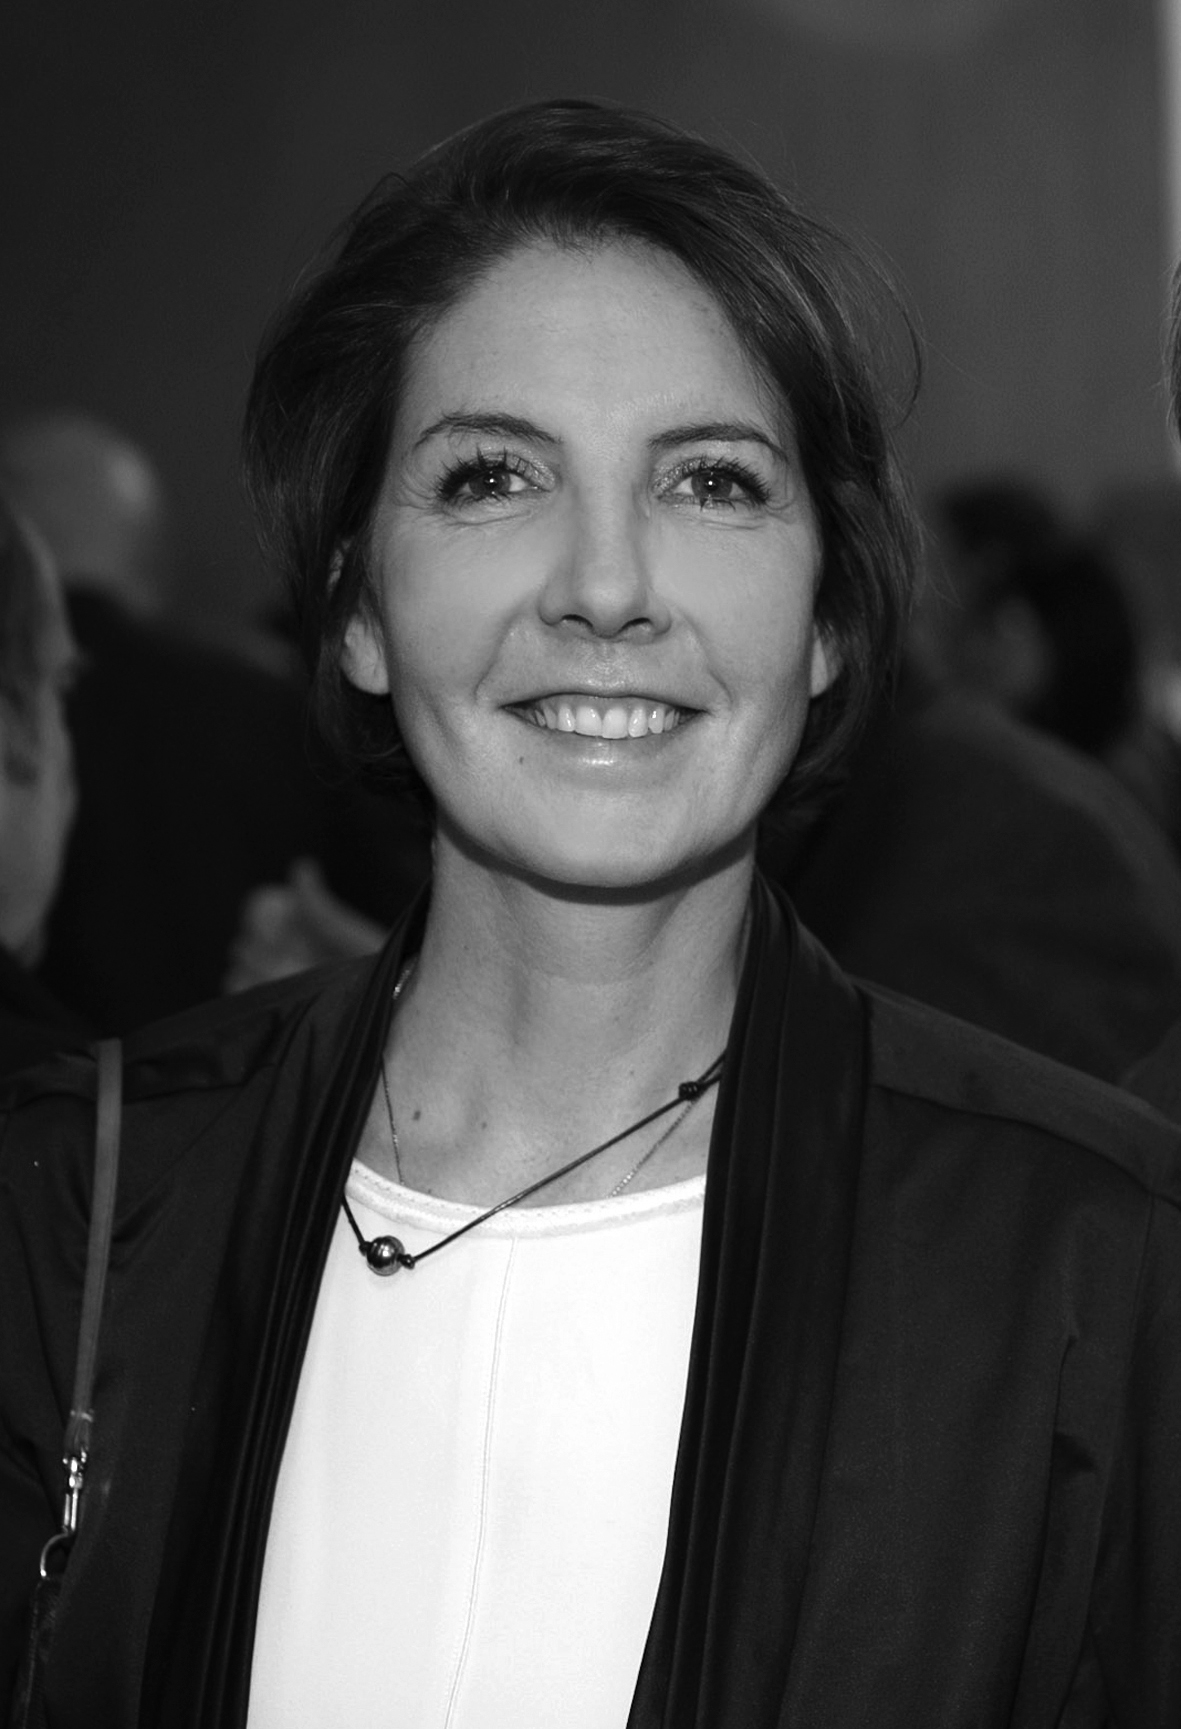 Marie-Pierre Bordet